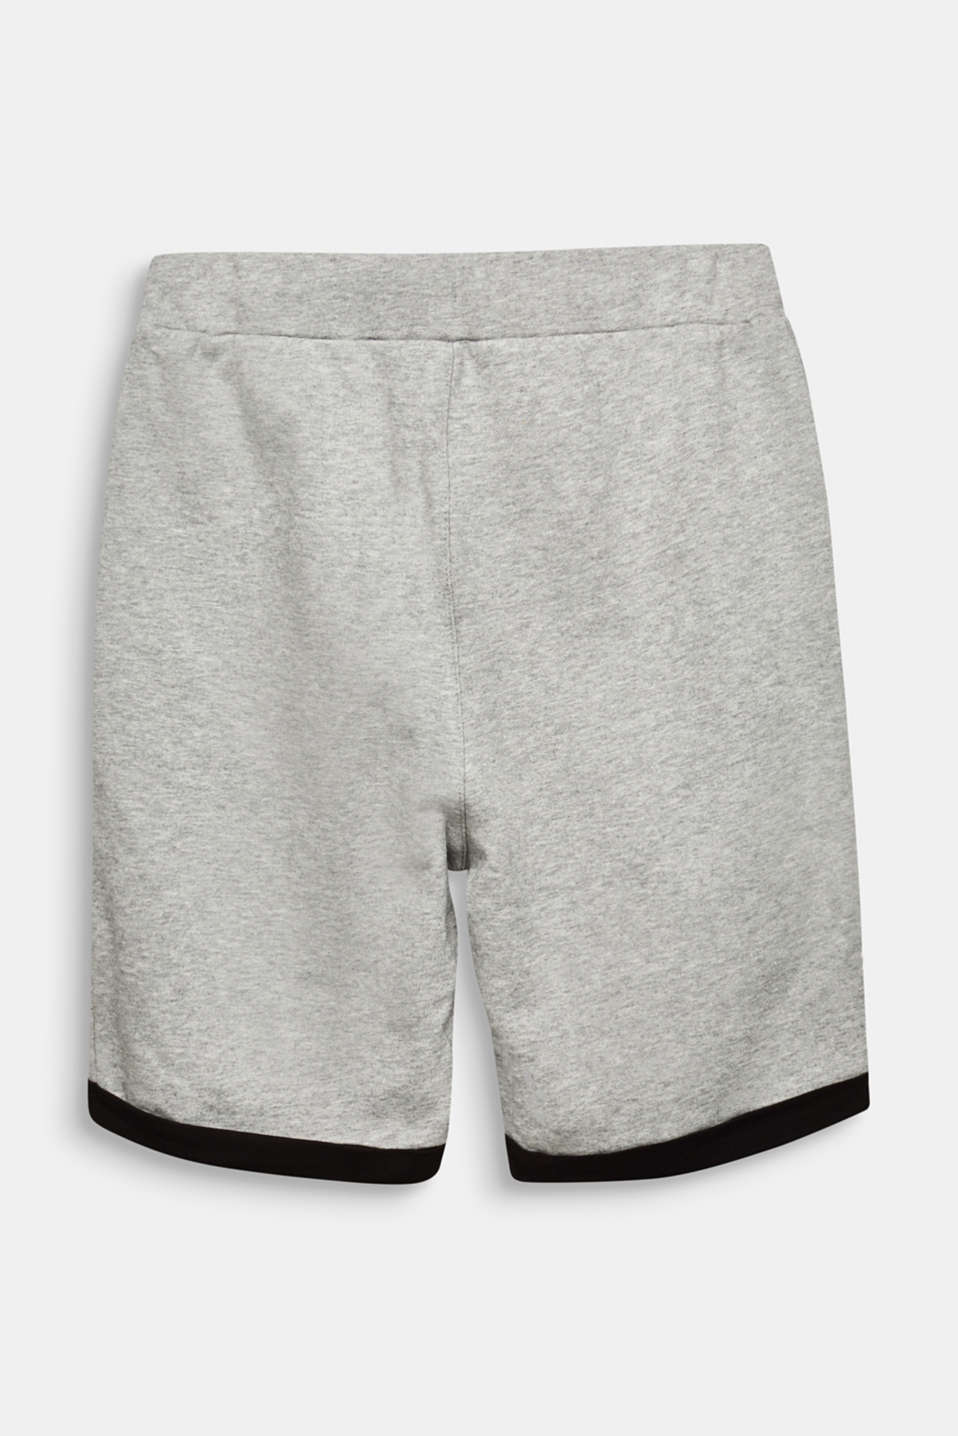 Sweat shorts, 100% cotton, LCMID HEATHER GR, detail image number 1